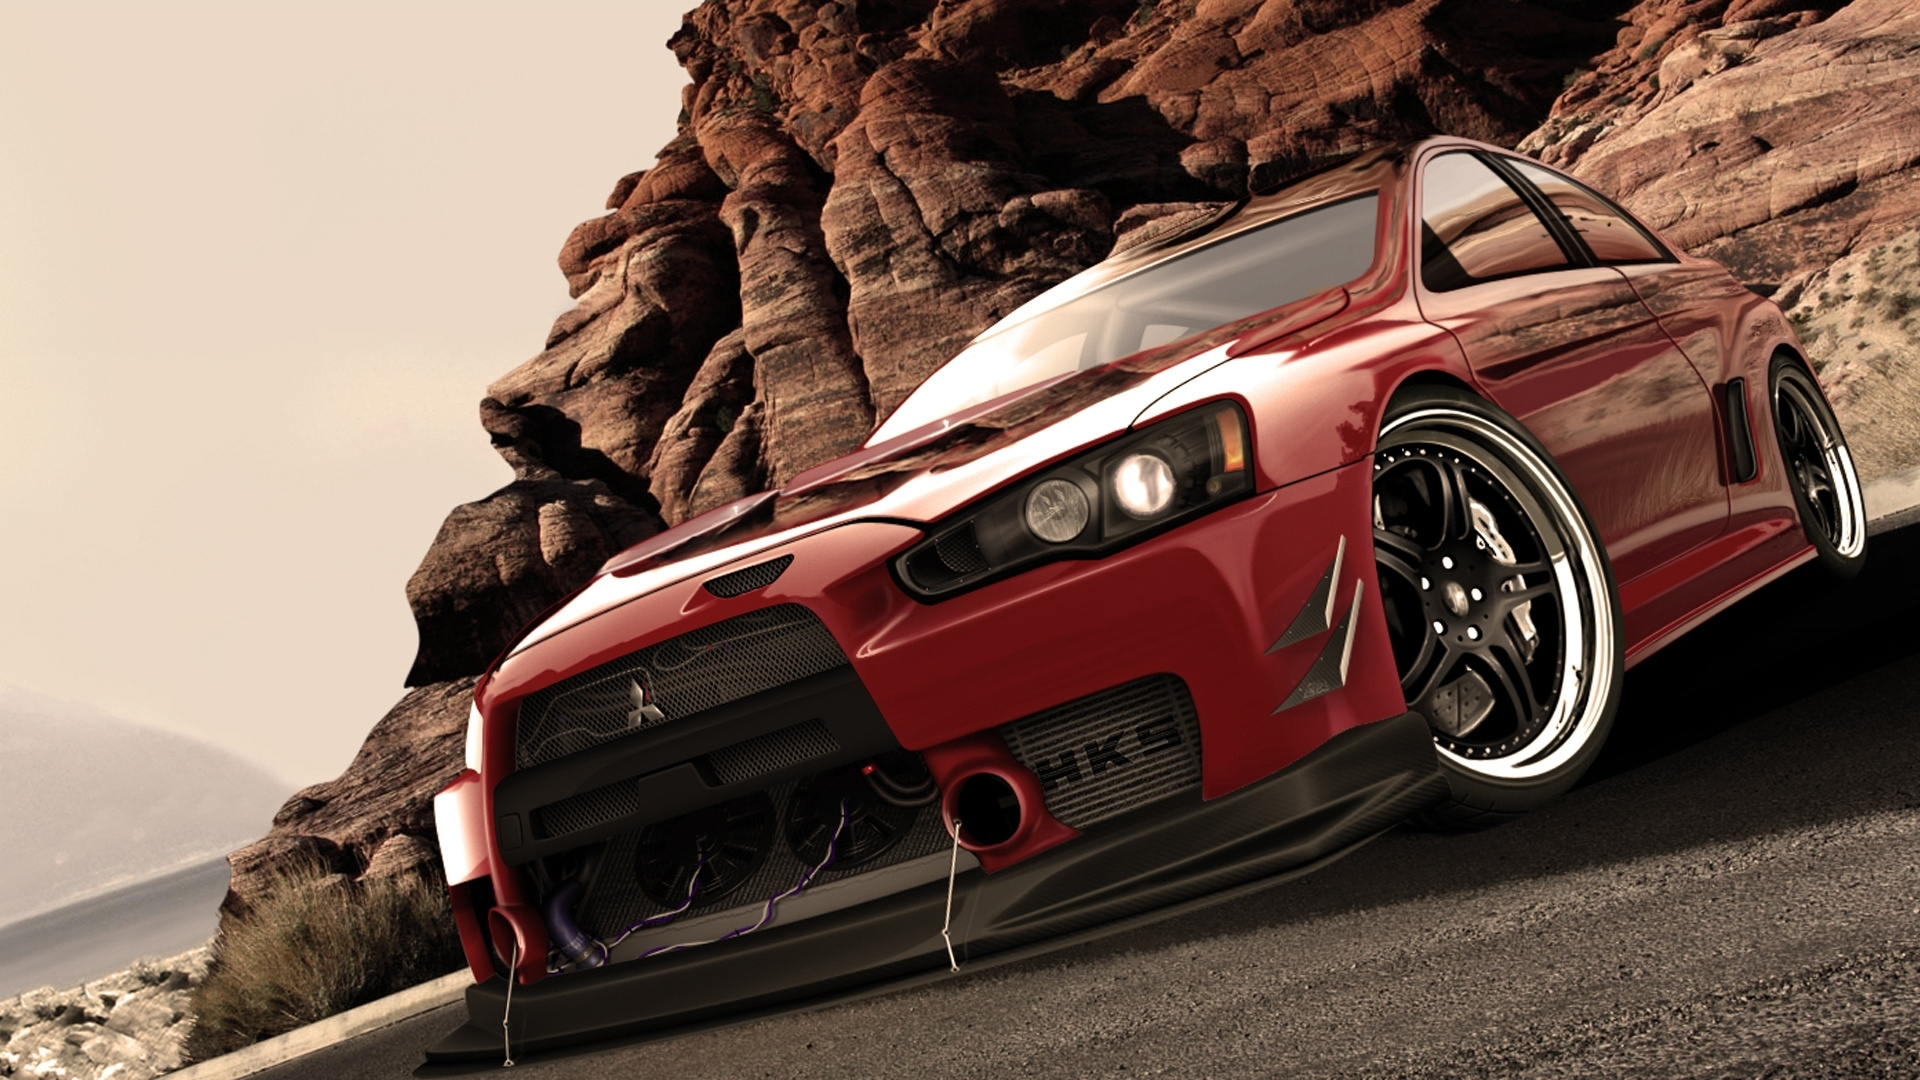 42626 download wallpaper Transport, Auto, Mitsubishi screensavers and pictures for free